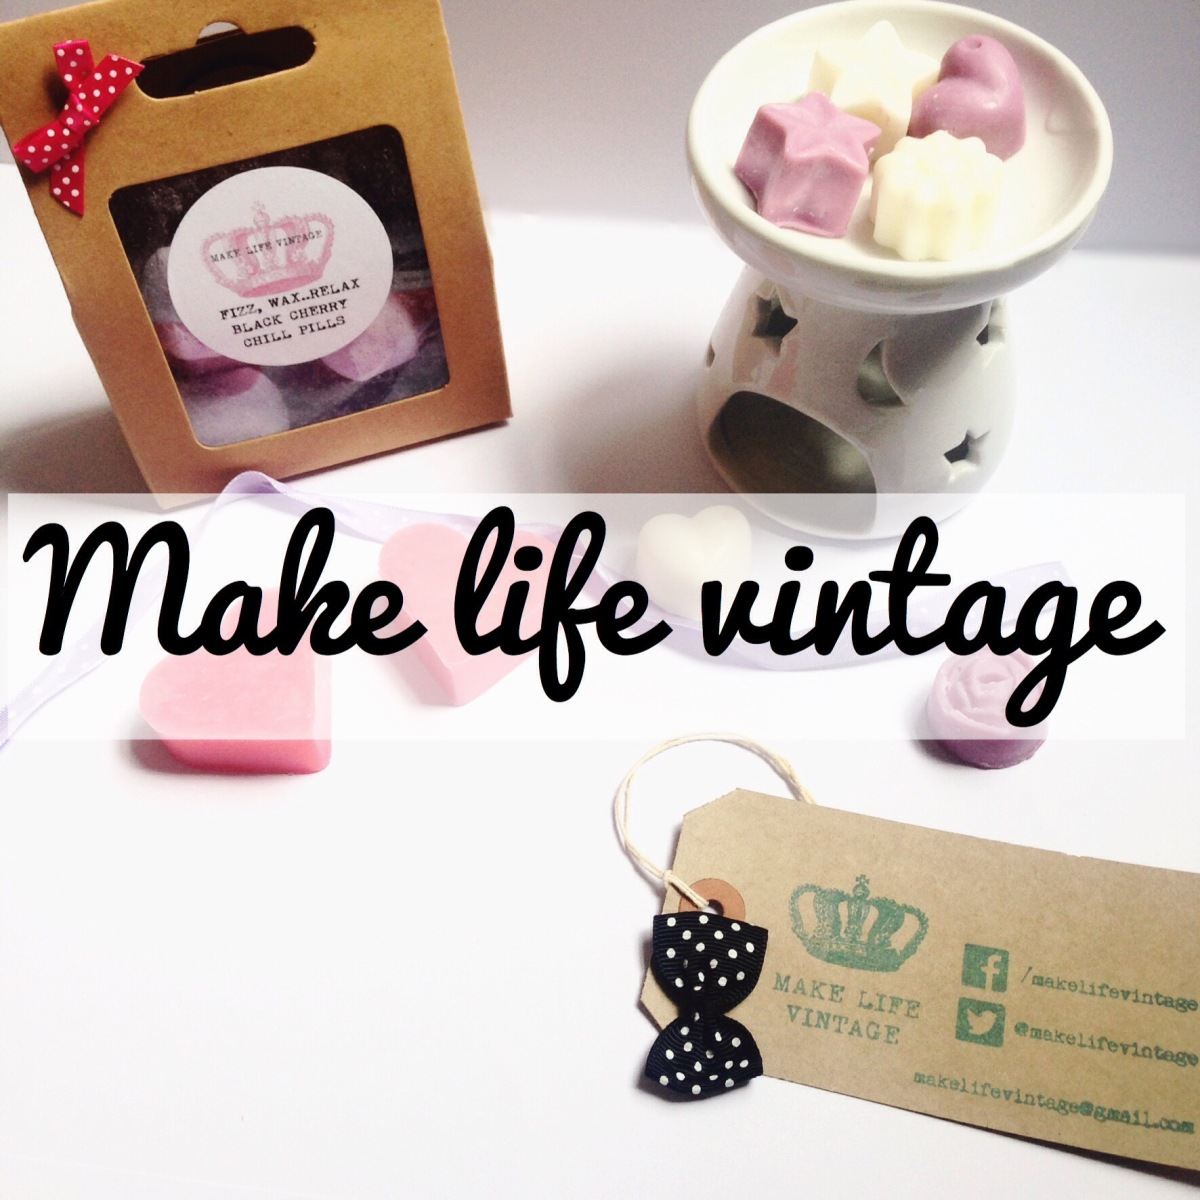 Make Life Vintage: Handmade Soy wax melts, Tarts & Candles